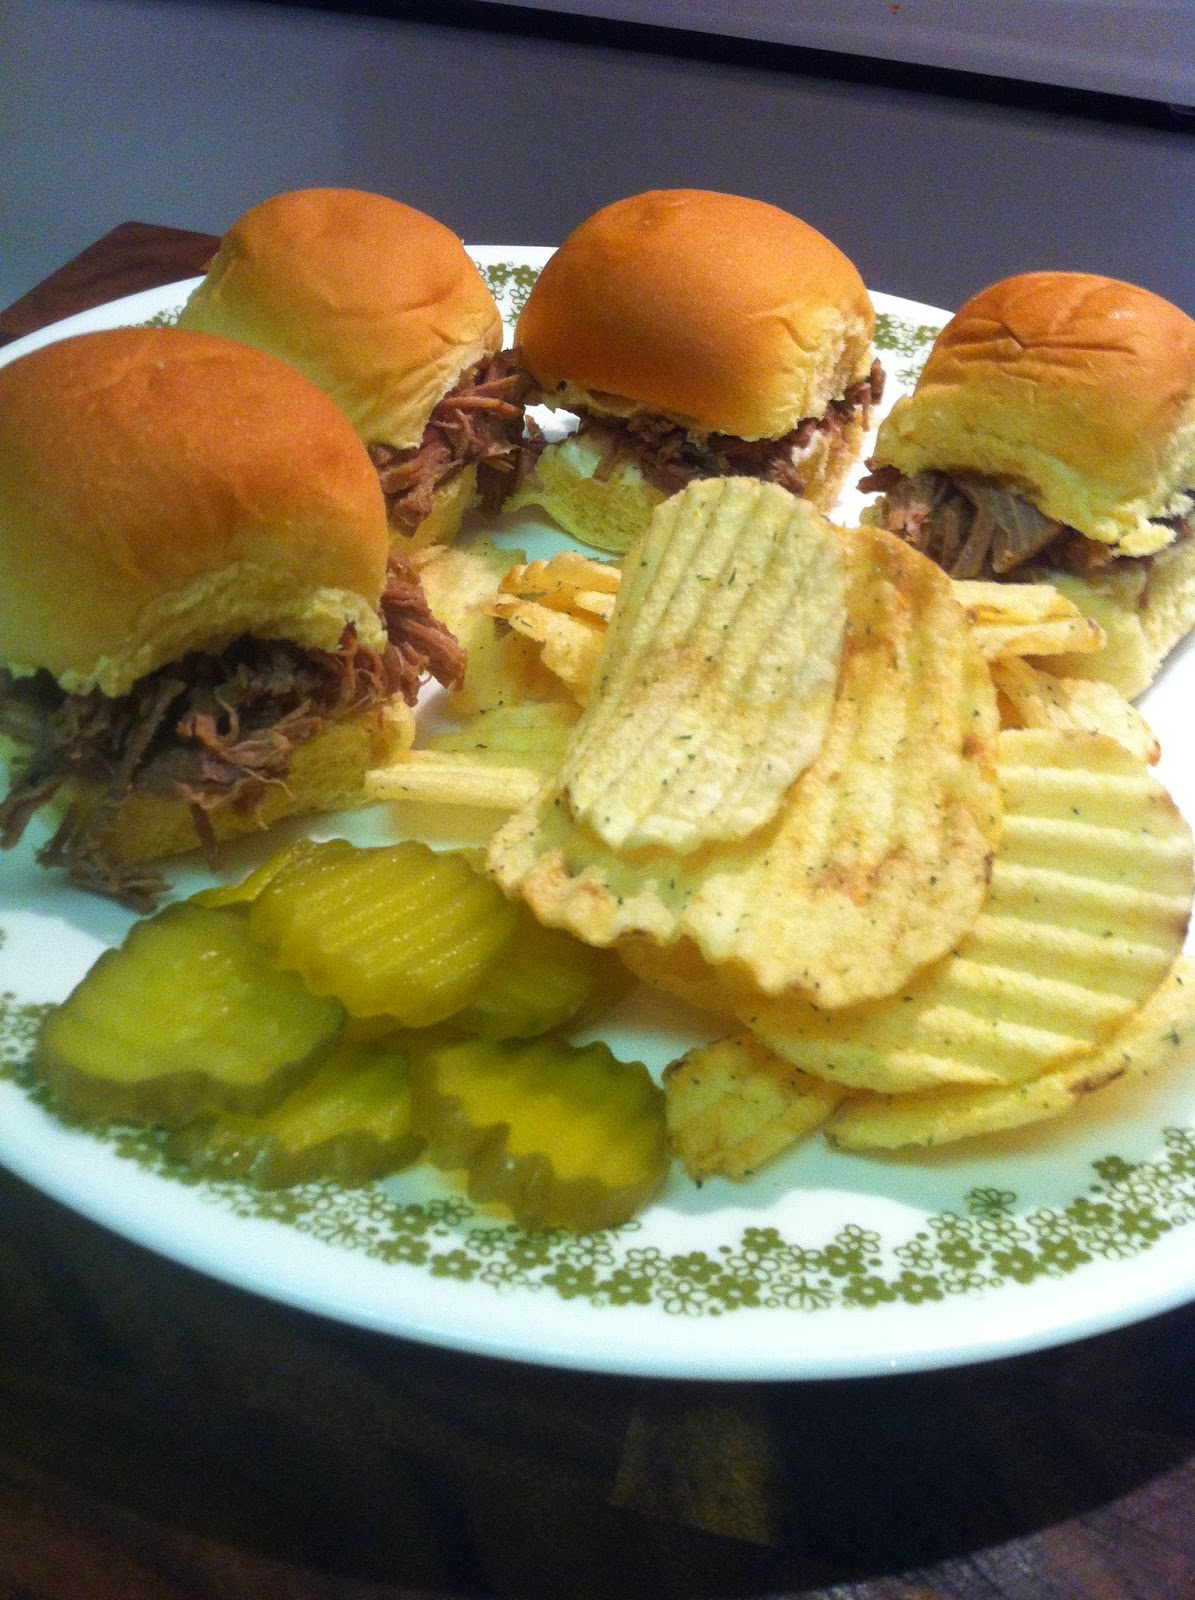 37 Cooks: Shredded Beef Sliders